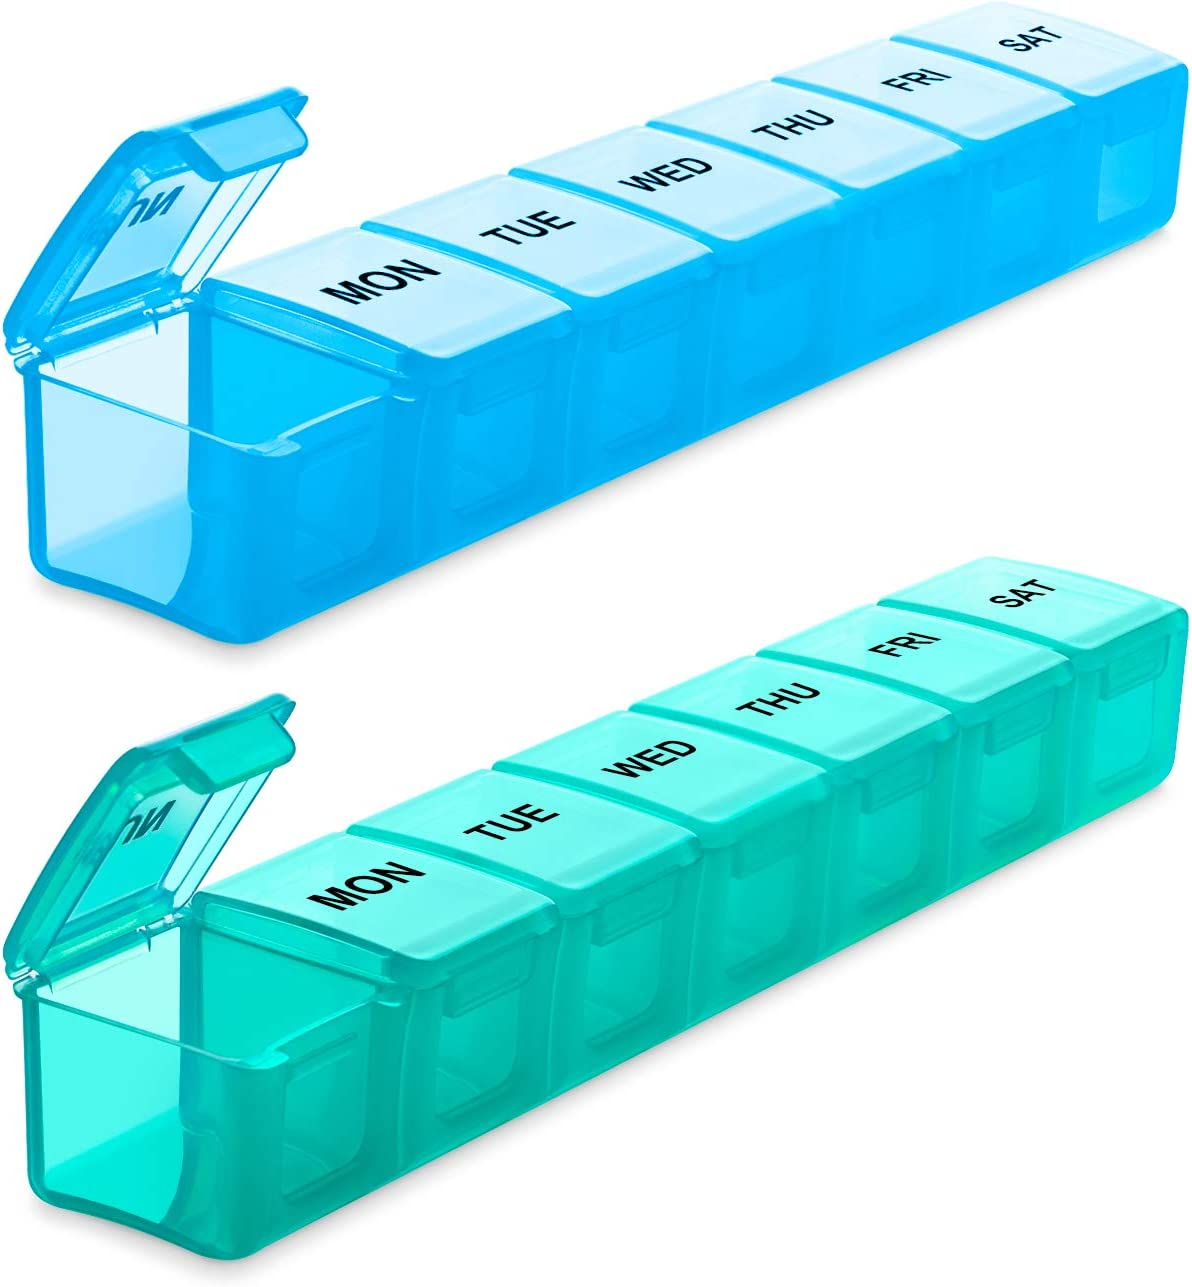 BUG HULL Extra Large Pill Organizer for Travel 2 Pack, Weekly XL Pill Box, 7 Day Jumbo Pill Case, Oversize Daily Medicine Organizer for Vitamins, Fish Oils, Supplements